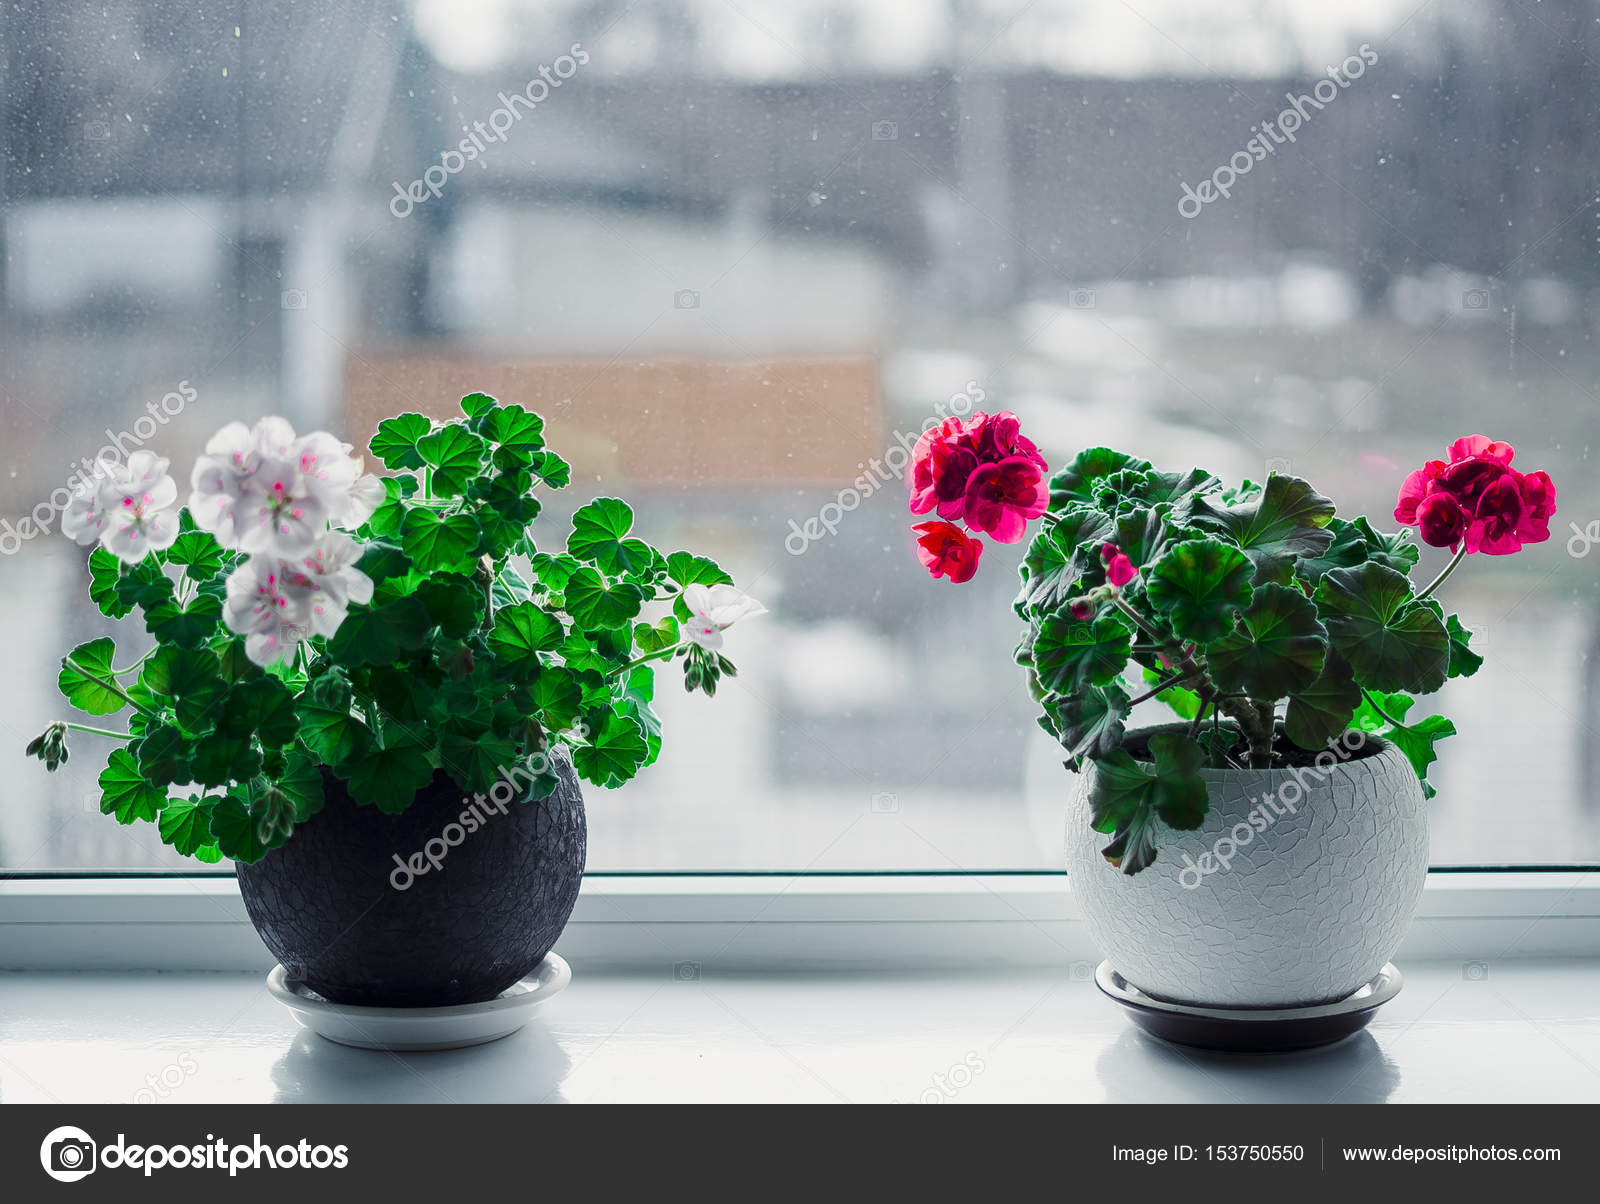 Red And White Flowers In Pots On The White Windowsill Concept